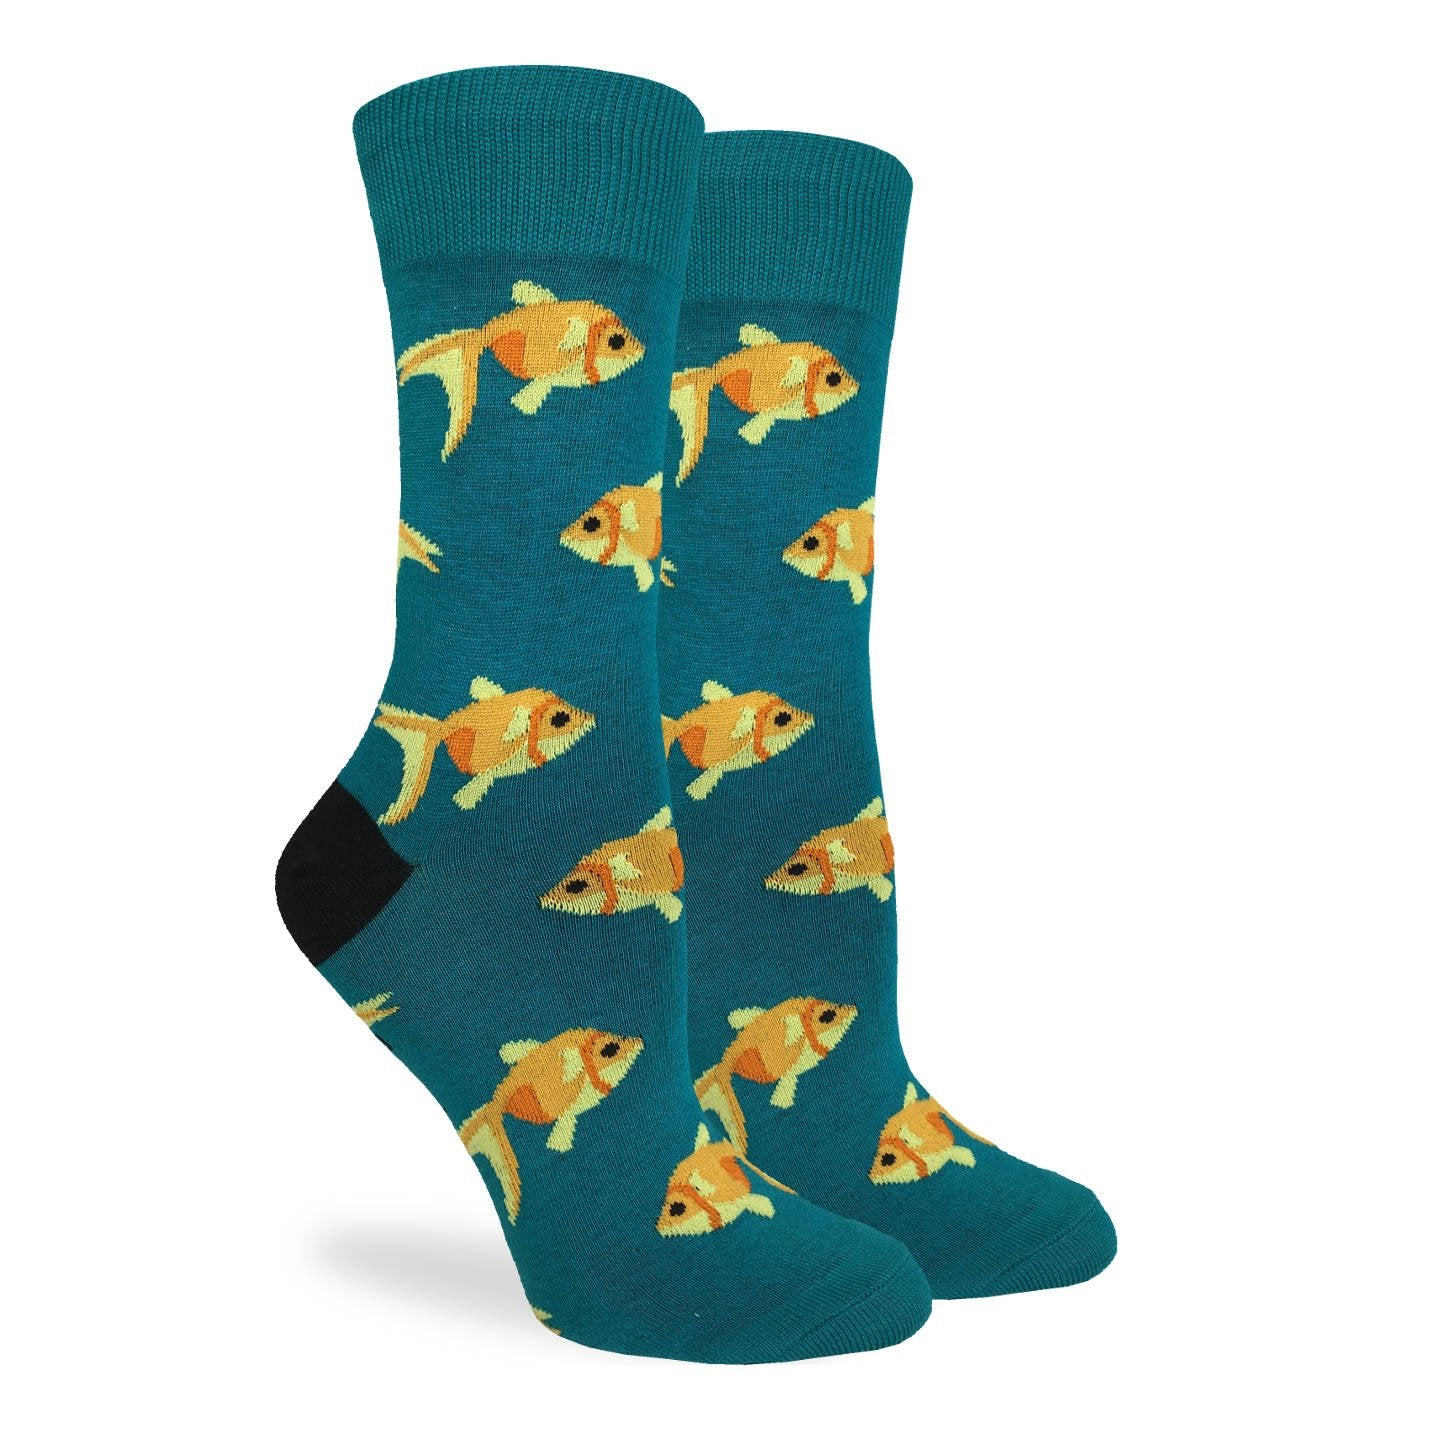 Women's Goldfish Socks - Good Luck Sock